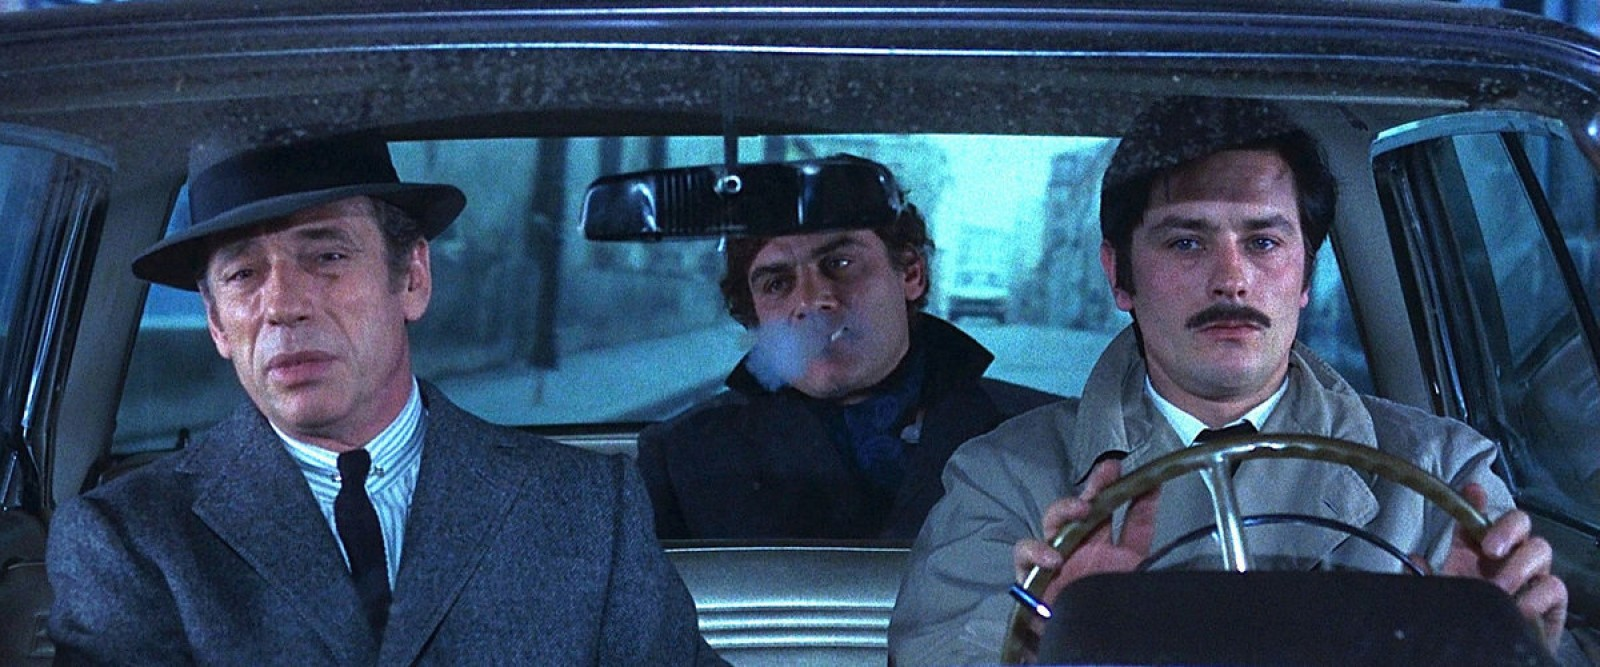 Honor, Loyalty, and Friendship: John Woo on Le cercle rouge